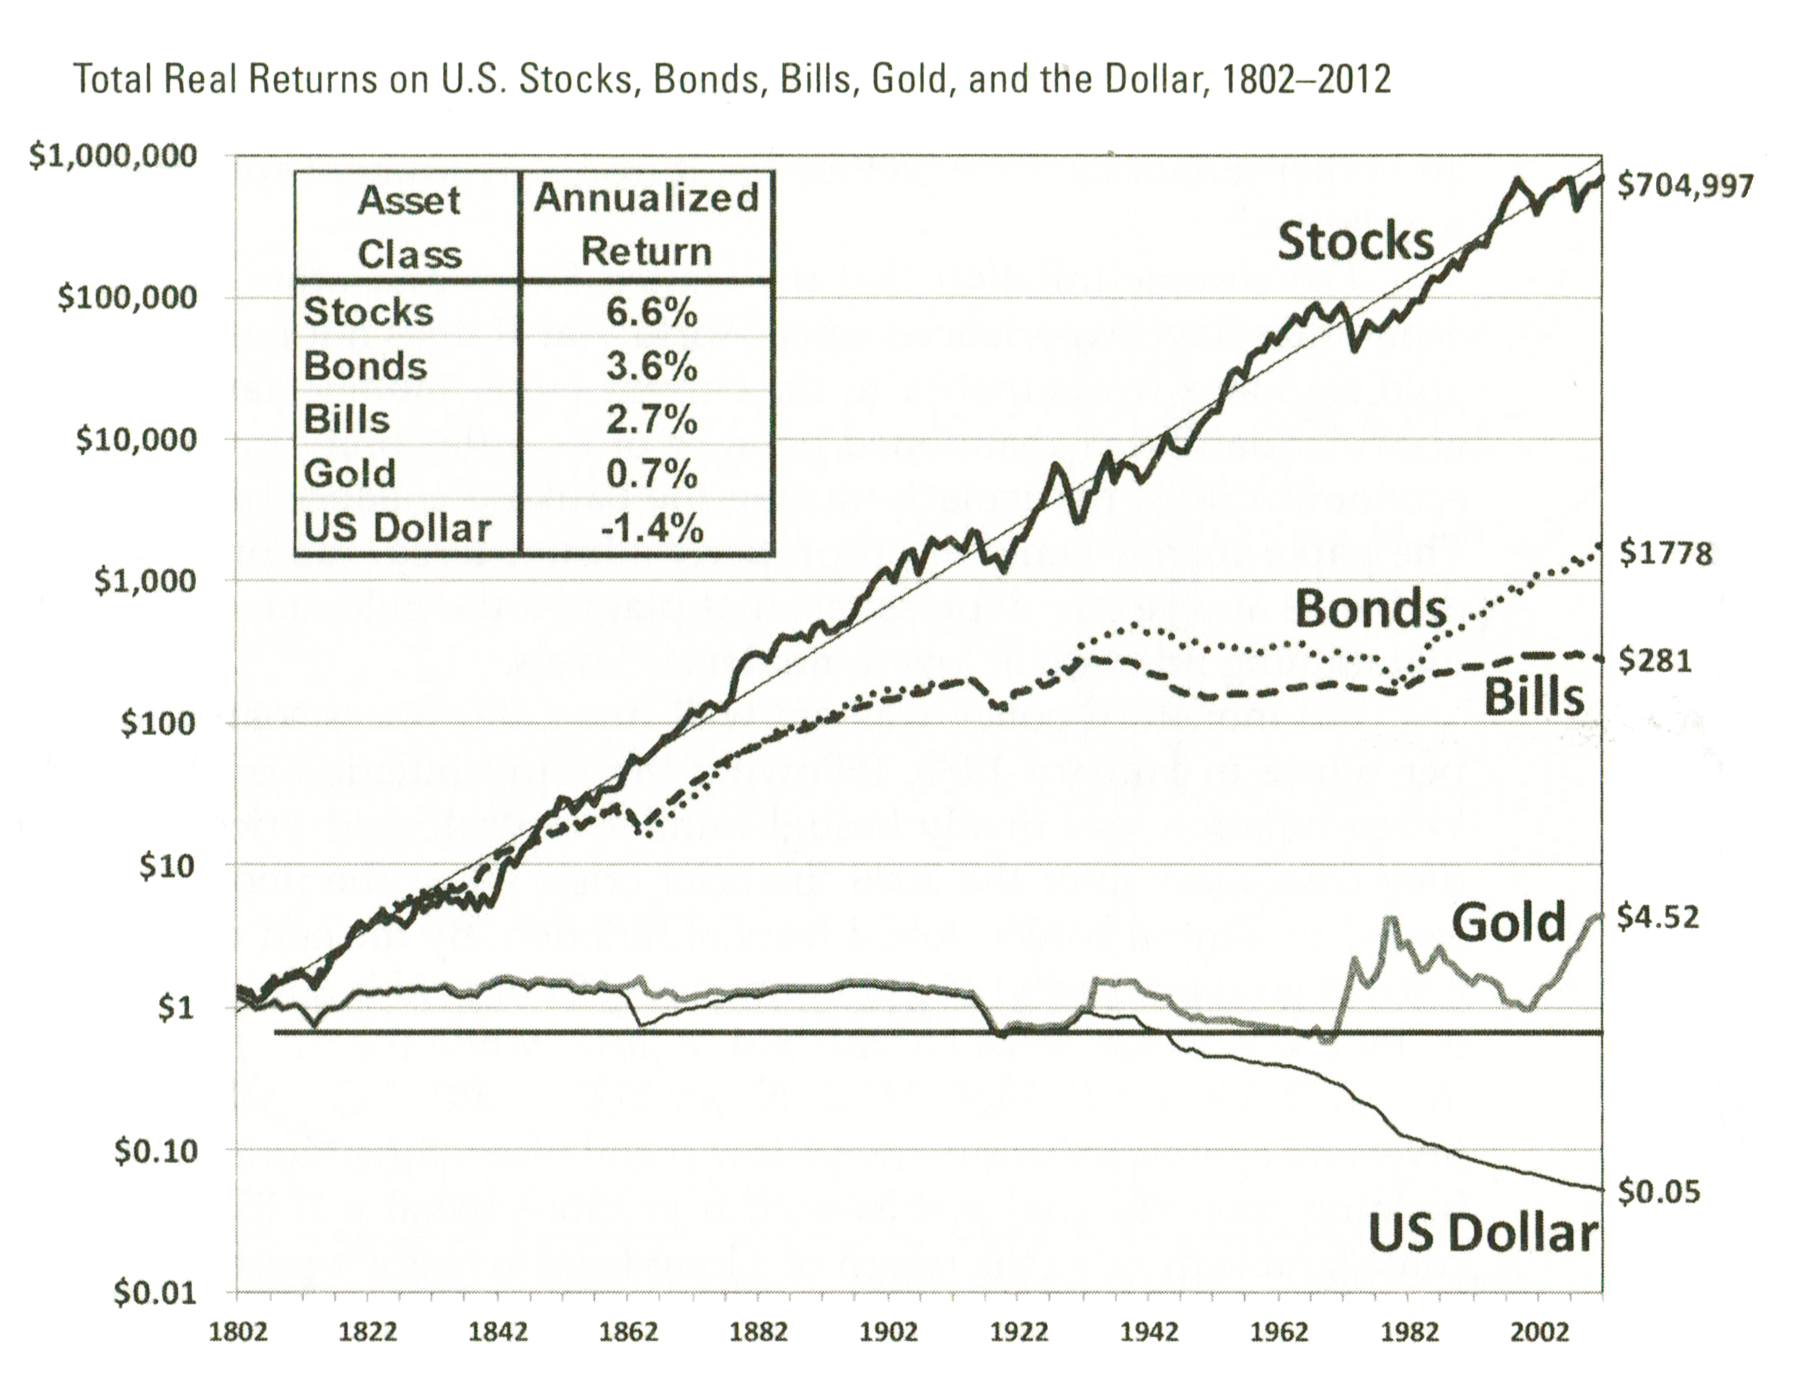 Total real returns on U.S. Stocks, Bonds, Bills, Gold, and the Dollar, 1802-2012